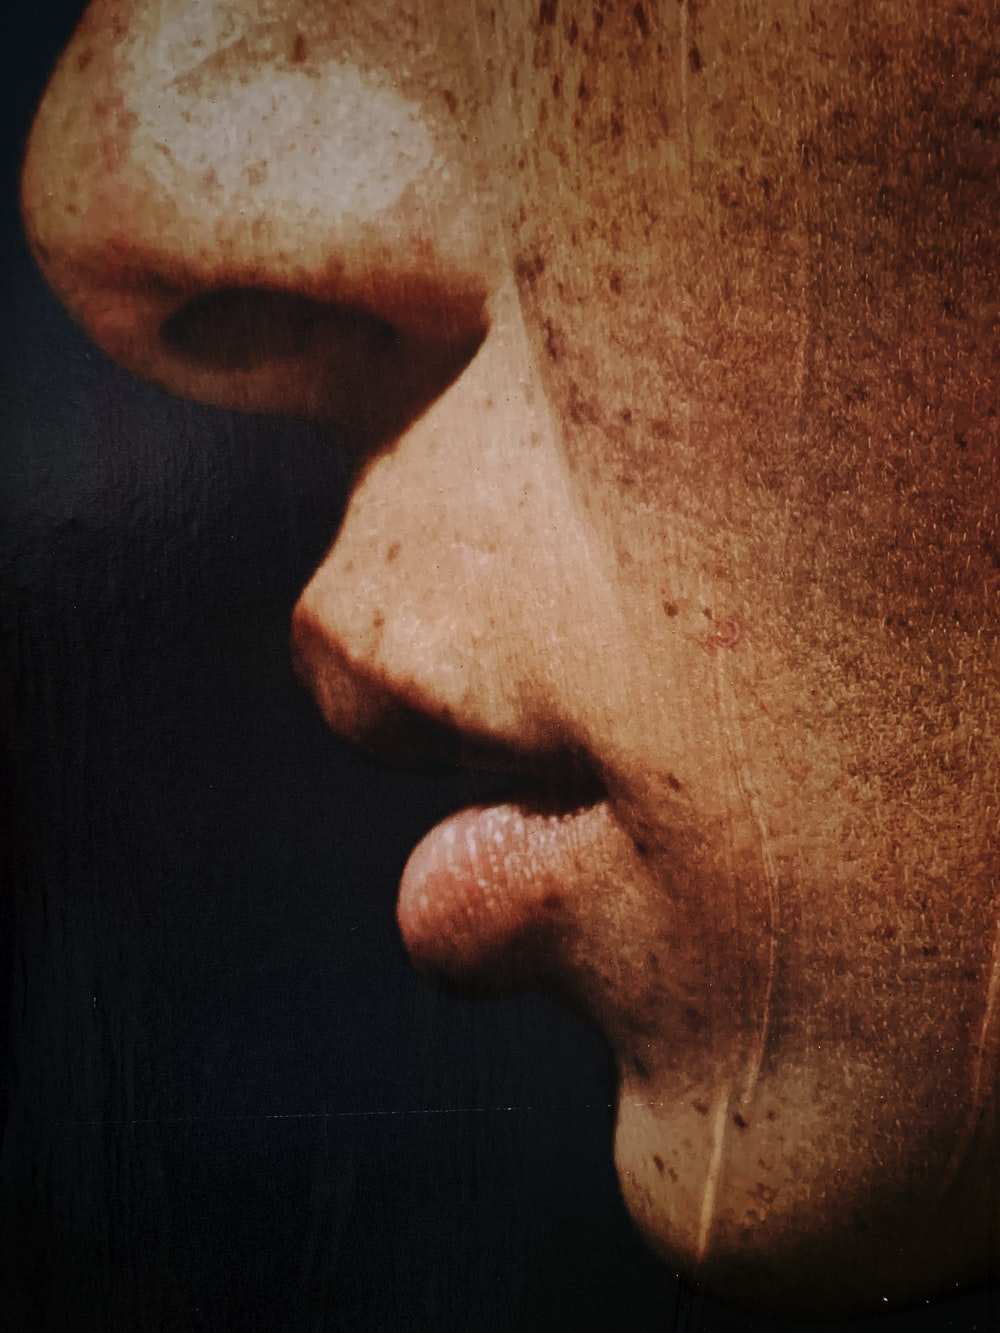 person's lips and nose